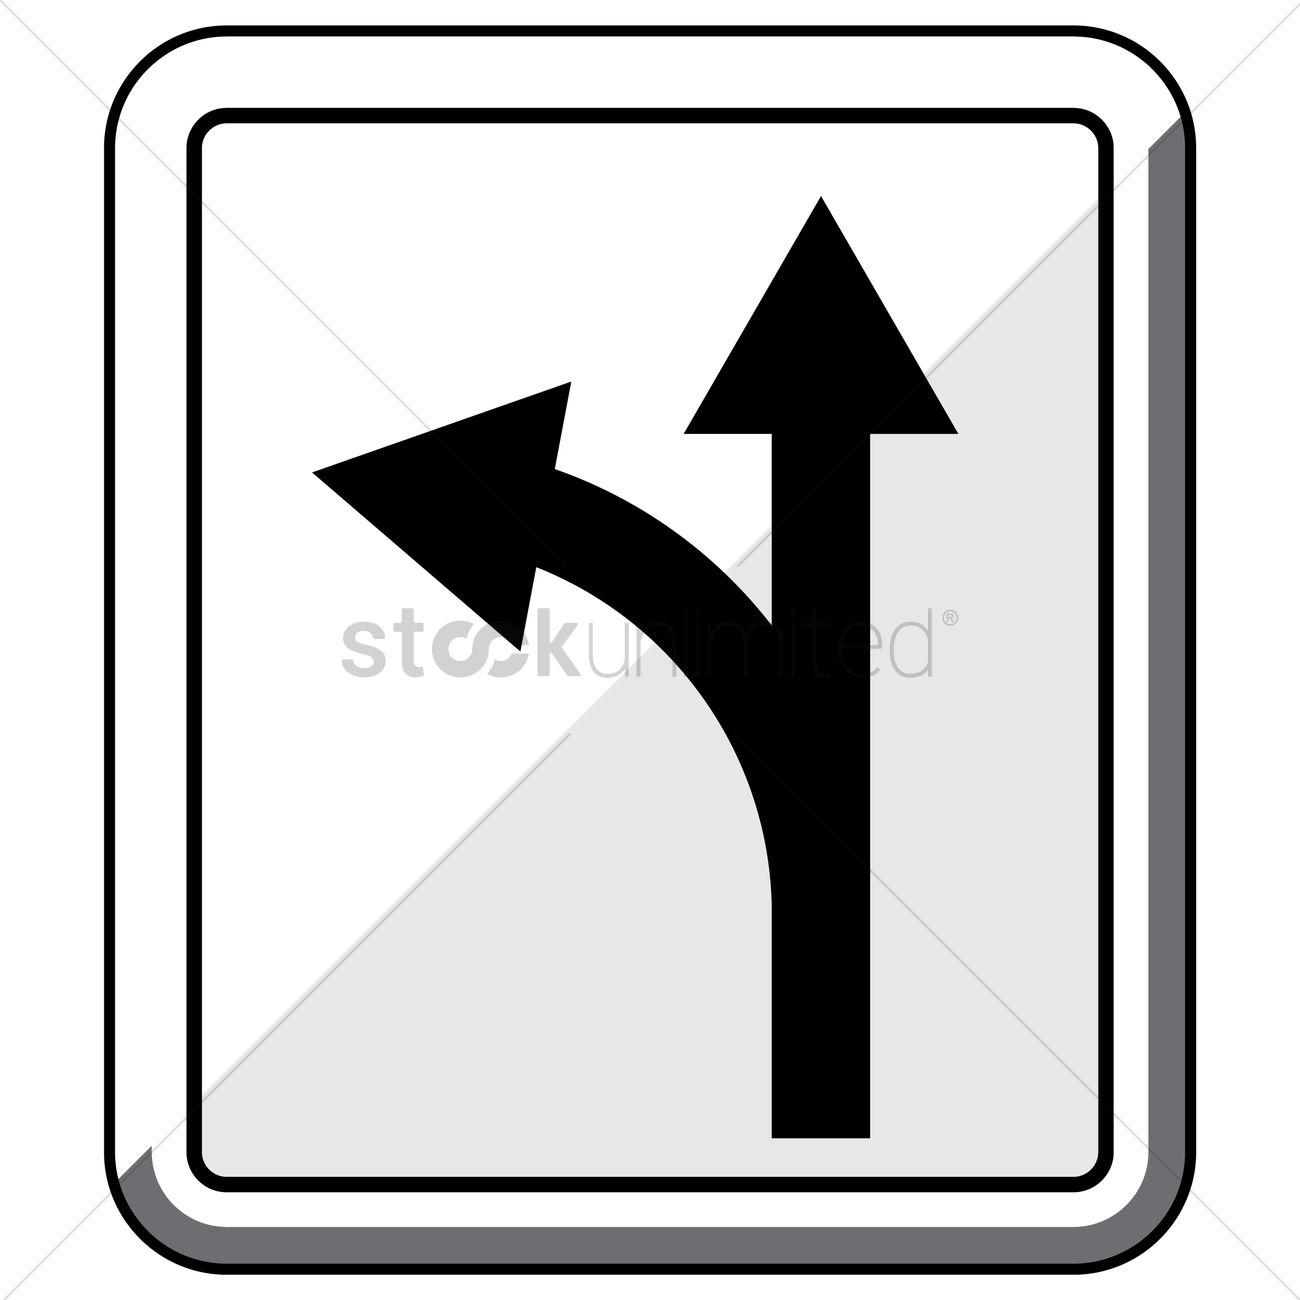 1300x1300 Turn Left Or Go Straight Road Sign Vector Image